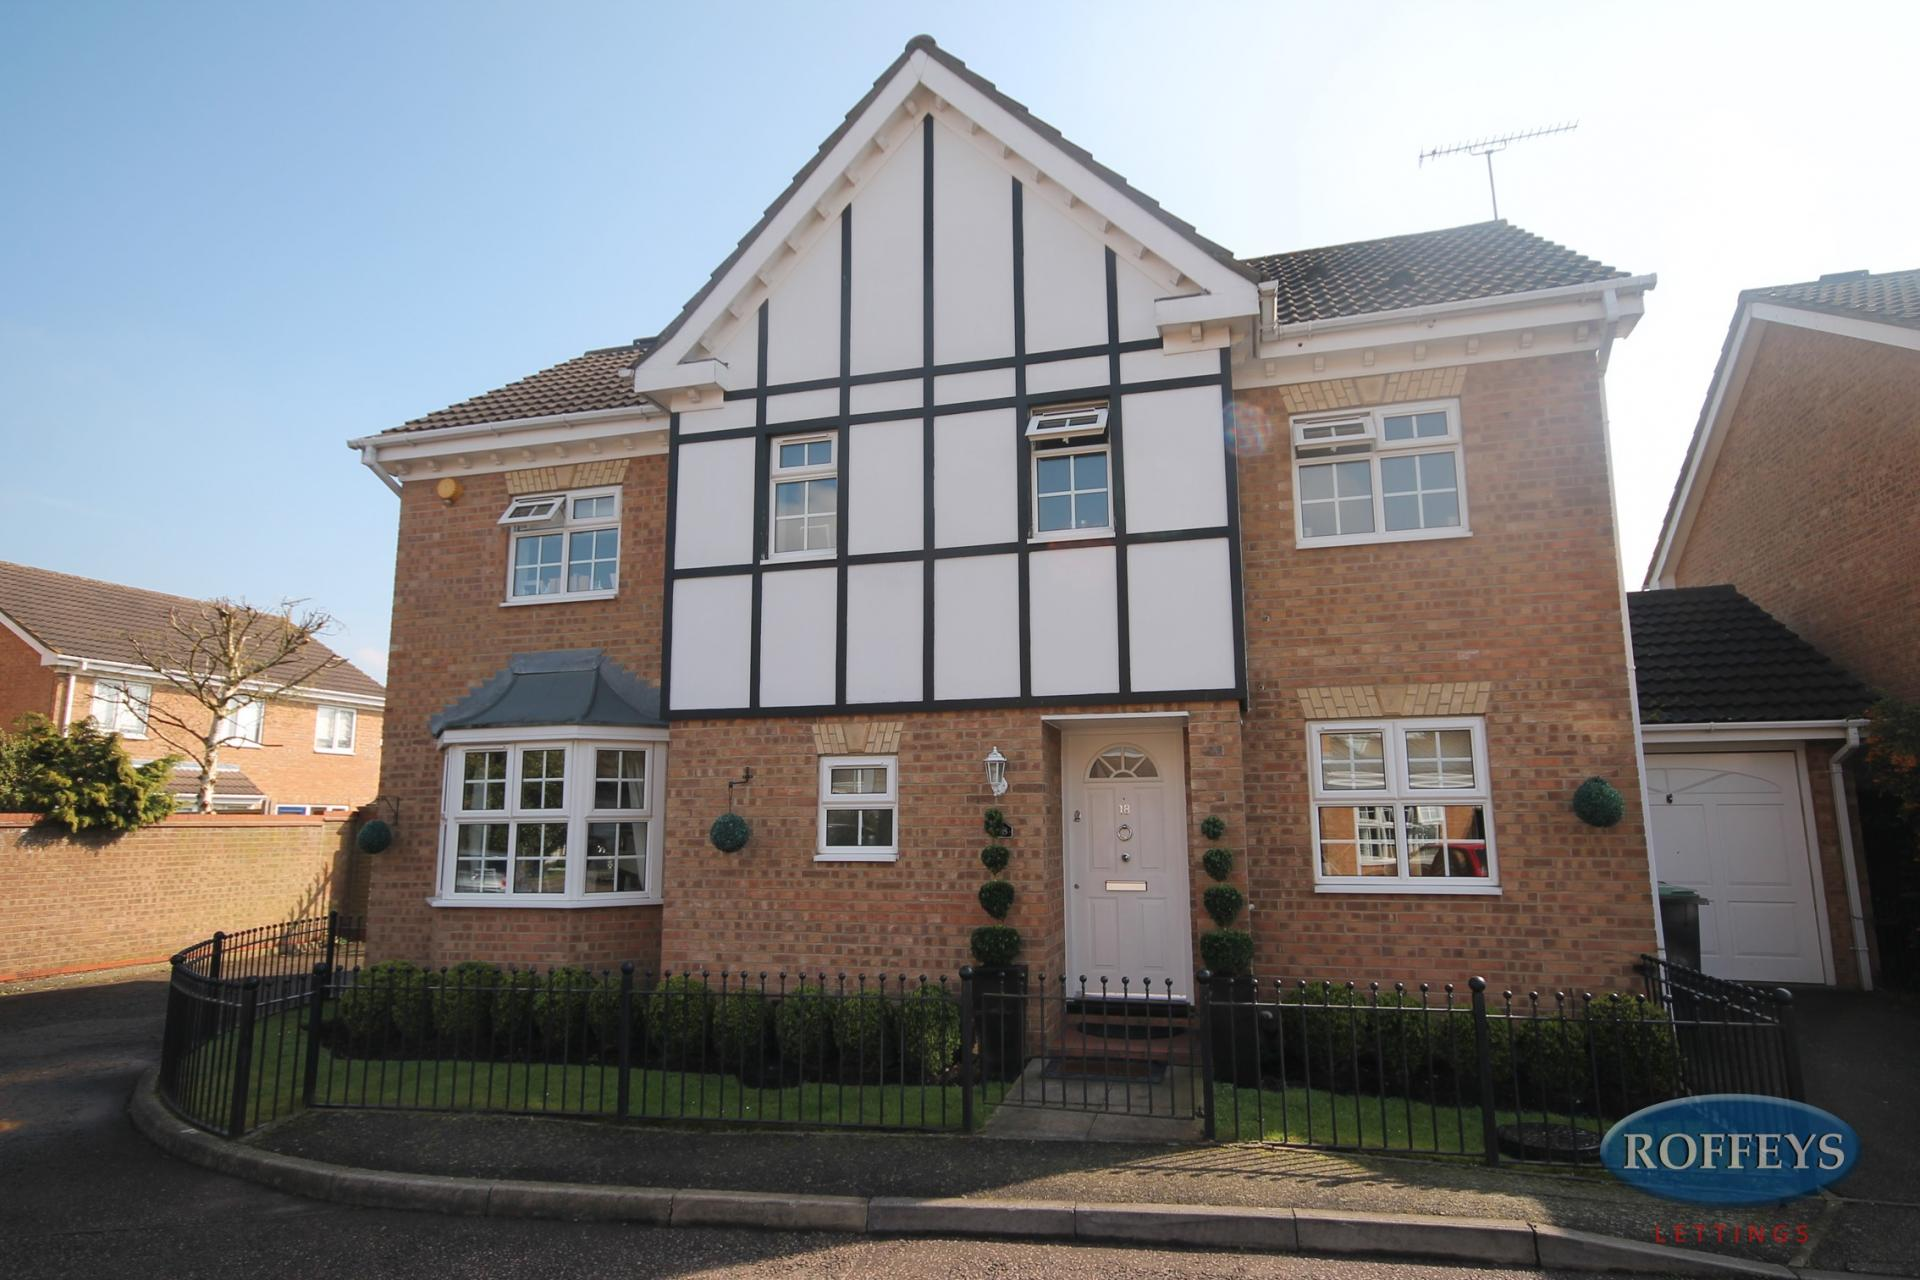 Property To Rent In Waltham Abbey